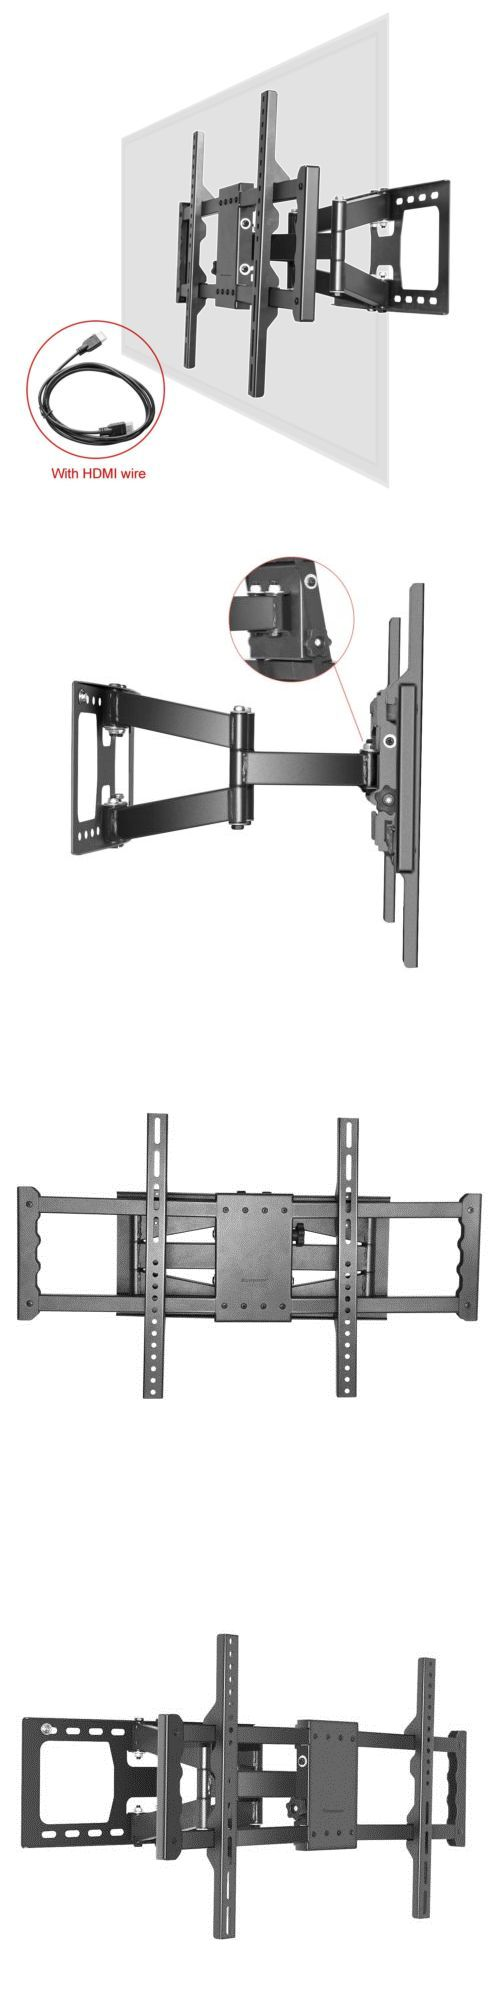 TV Mounts and Brackets: Full Motion Tilt Lcd Led Tv Wall Mount Bracket 42 46 47 50 55 60 62 Inch -> BUY IT NOW ONLY: $35.99 on eBay!